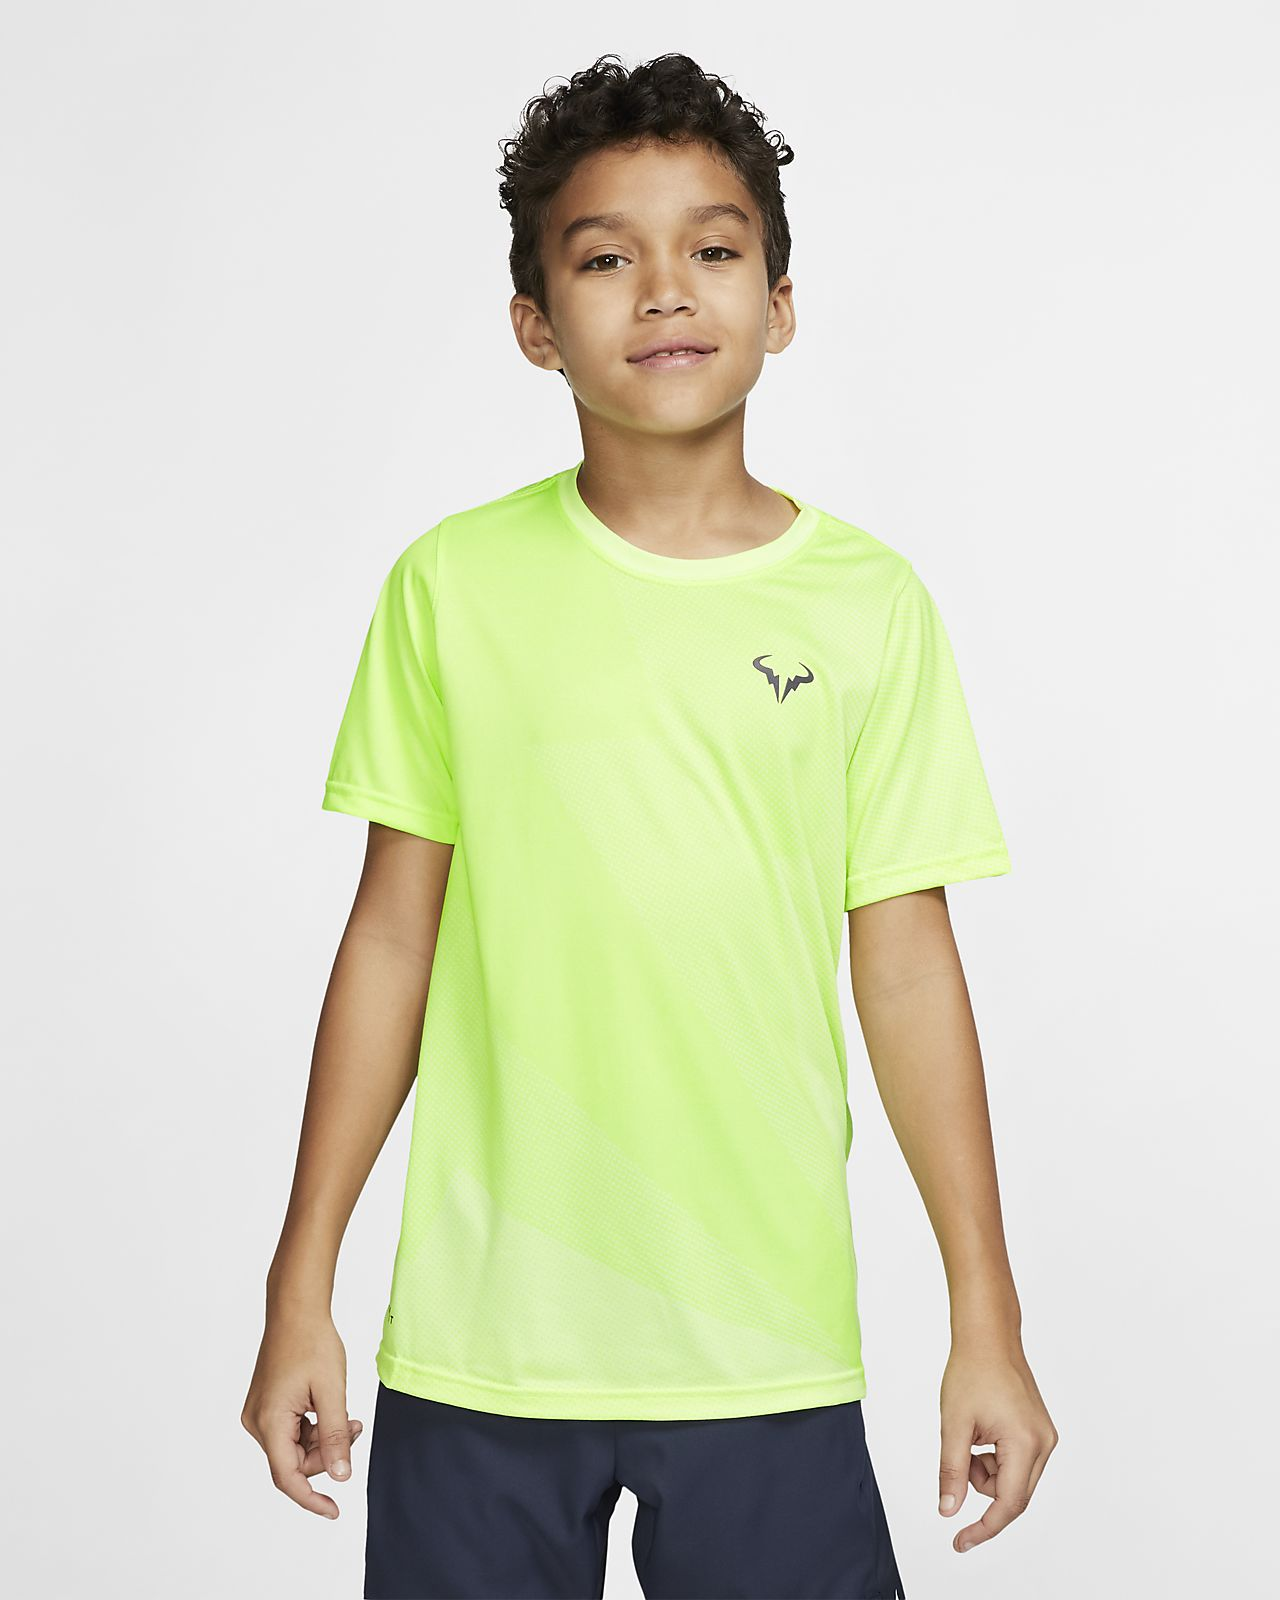 f8d8d023c8 Rafa Older Kids' (Boys') Tennis T-Shirt